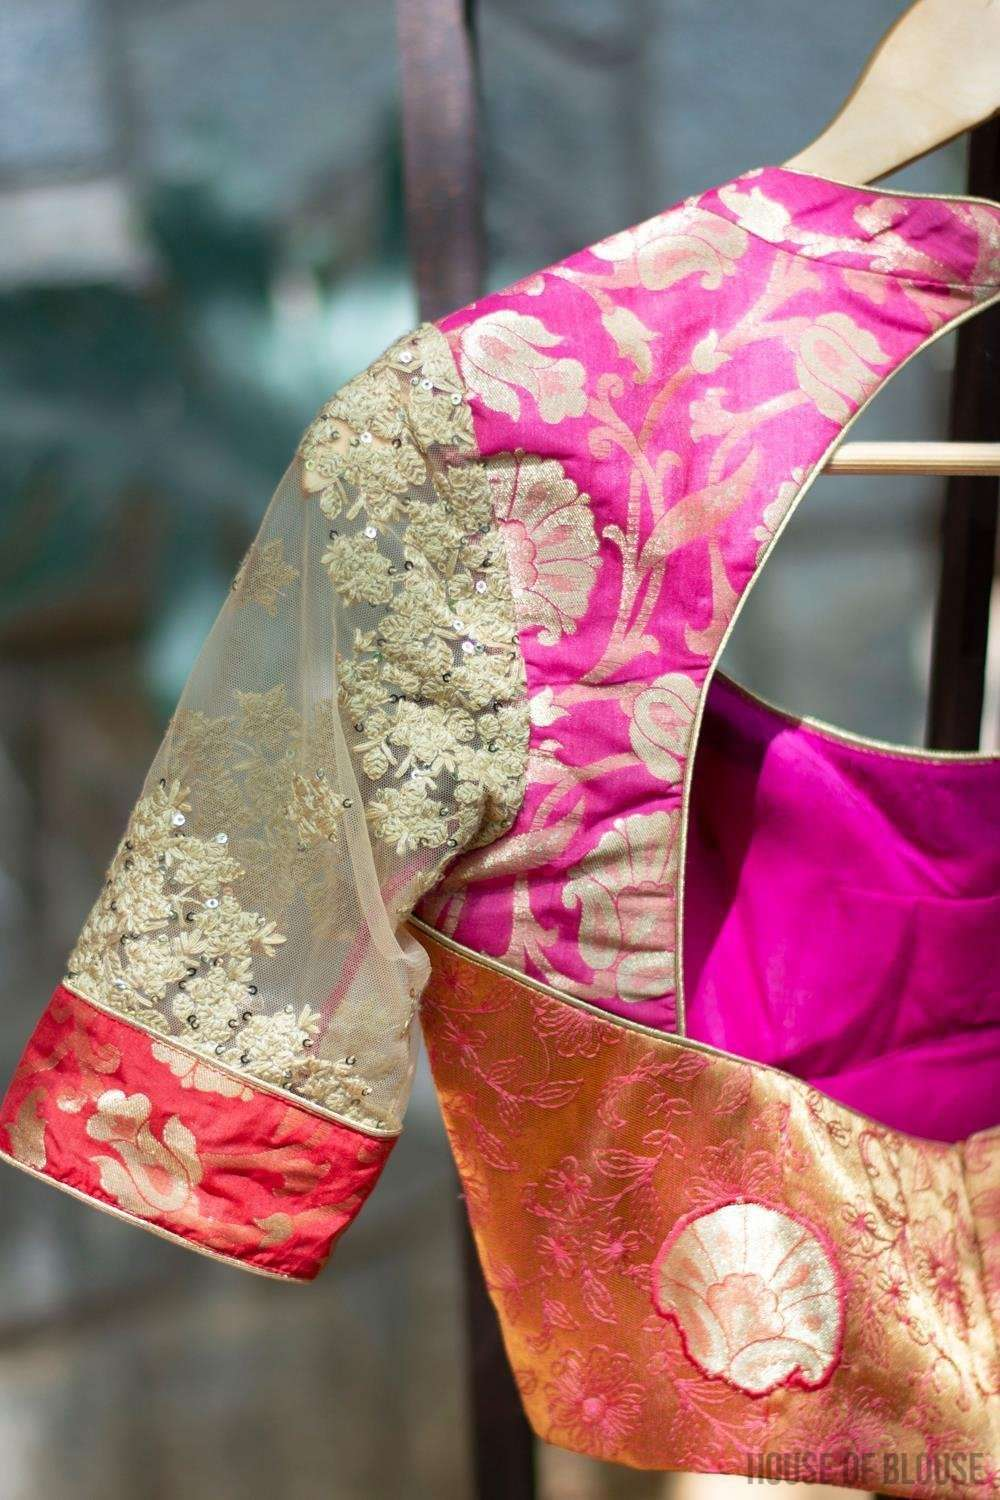 Patchwork blouse in pink and red brocade with embroidered net sleeves - House of Blouse